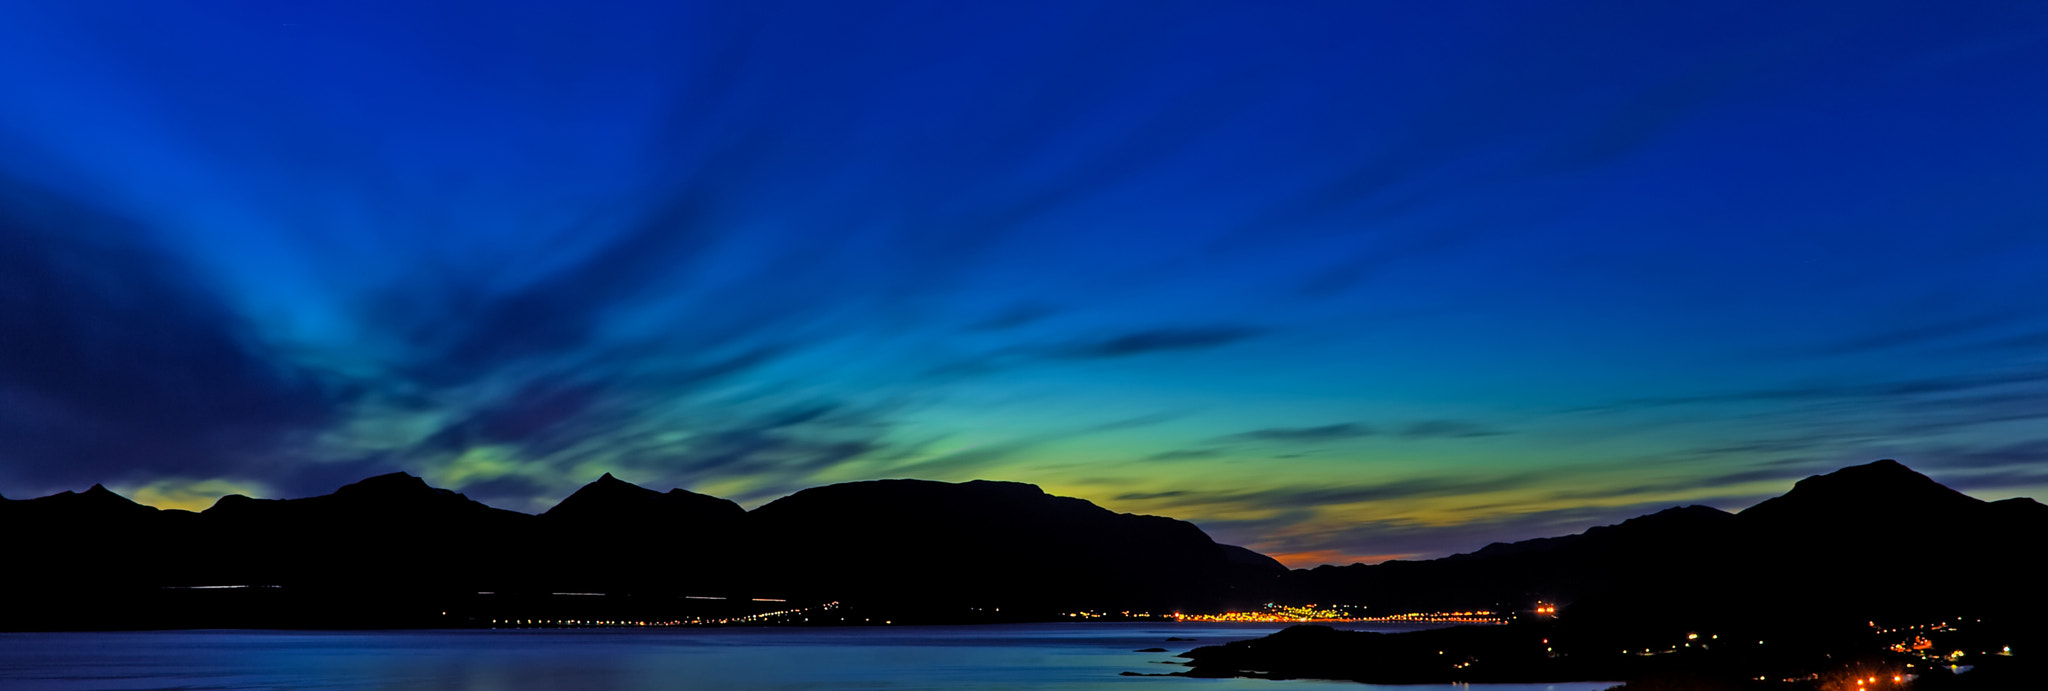 Photograph Herjangen at Night by Robin Holm on 500px